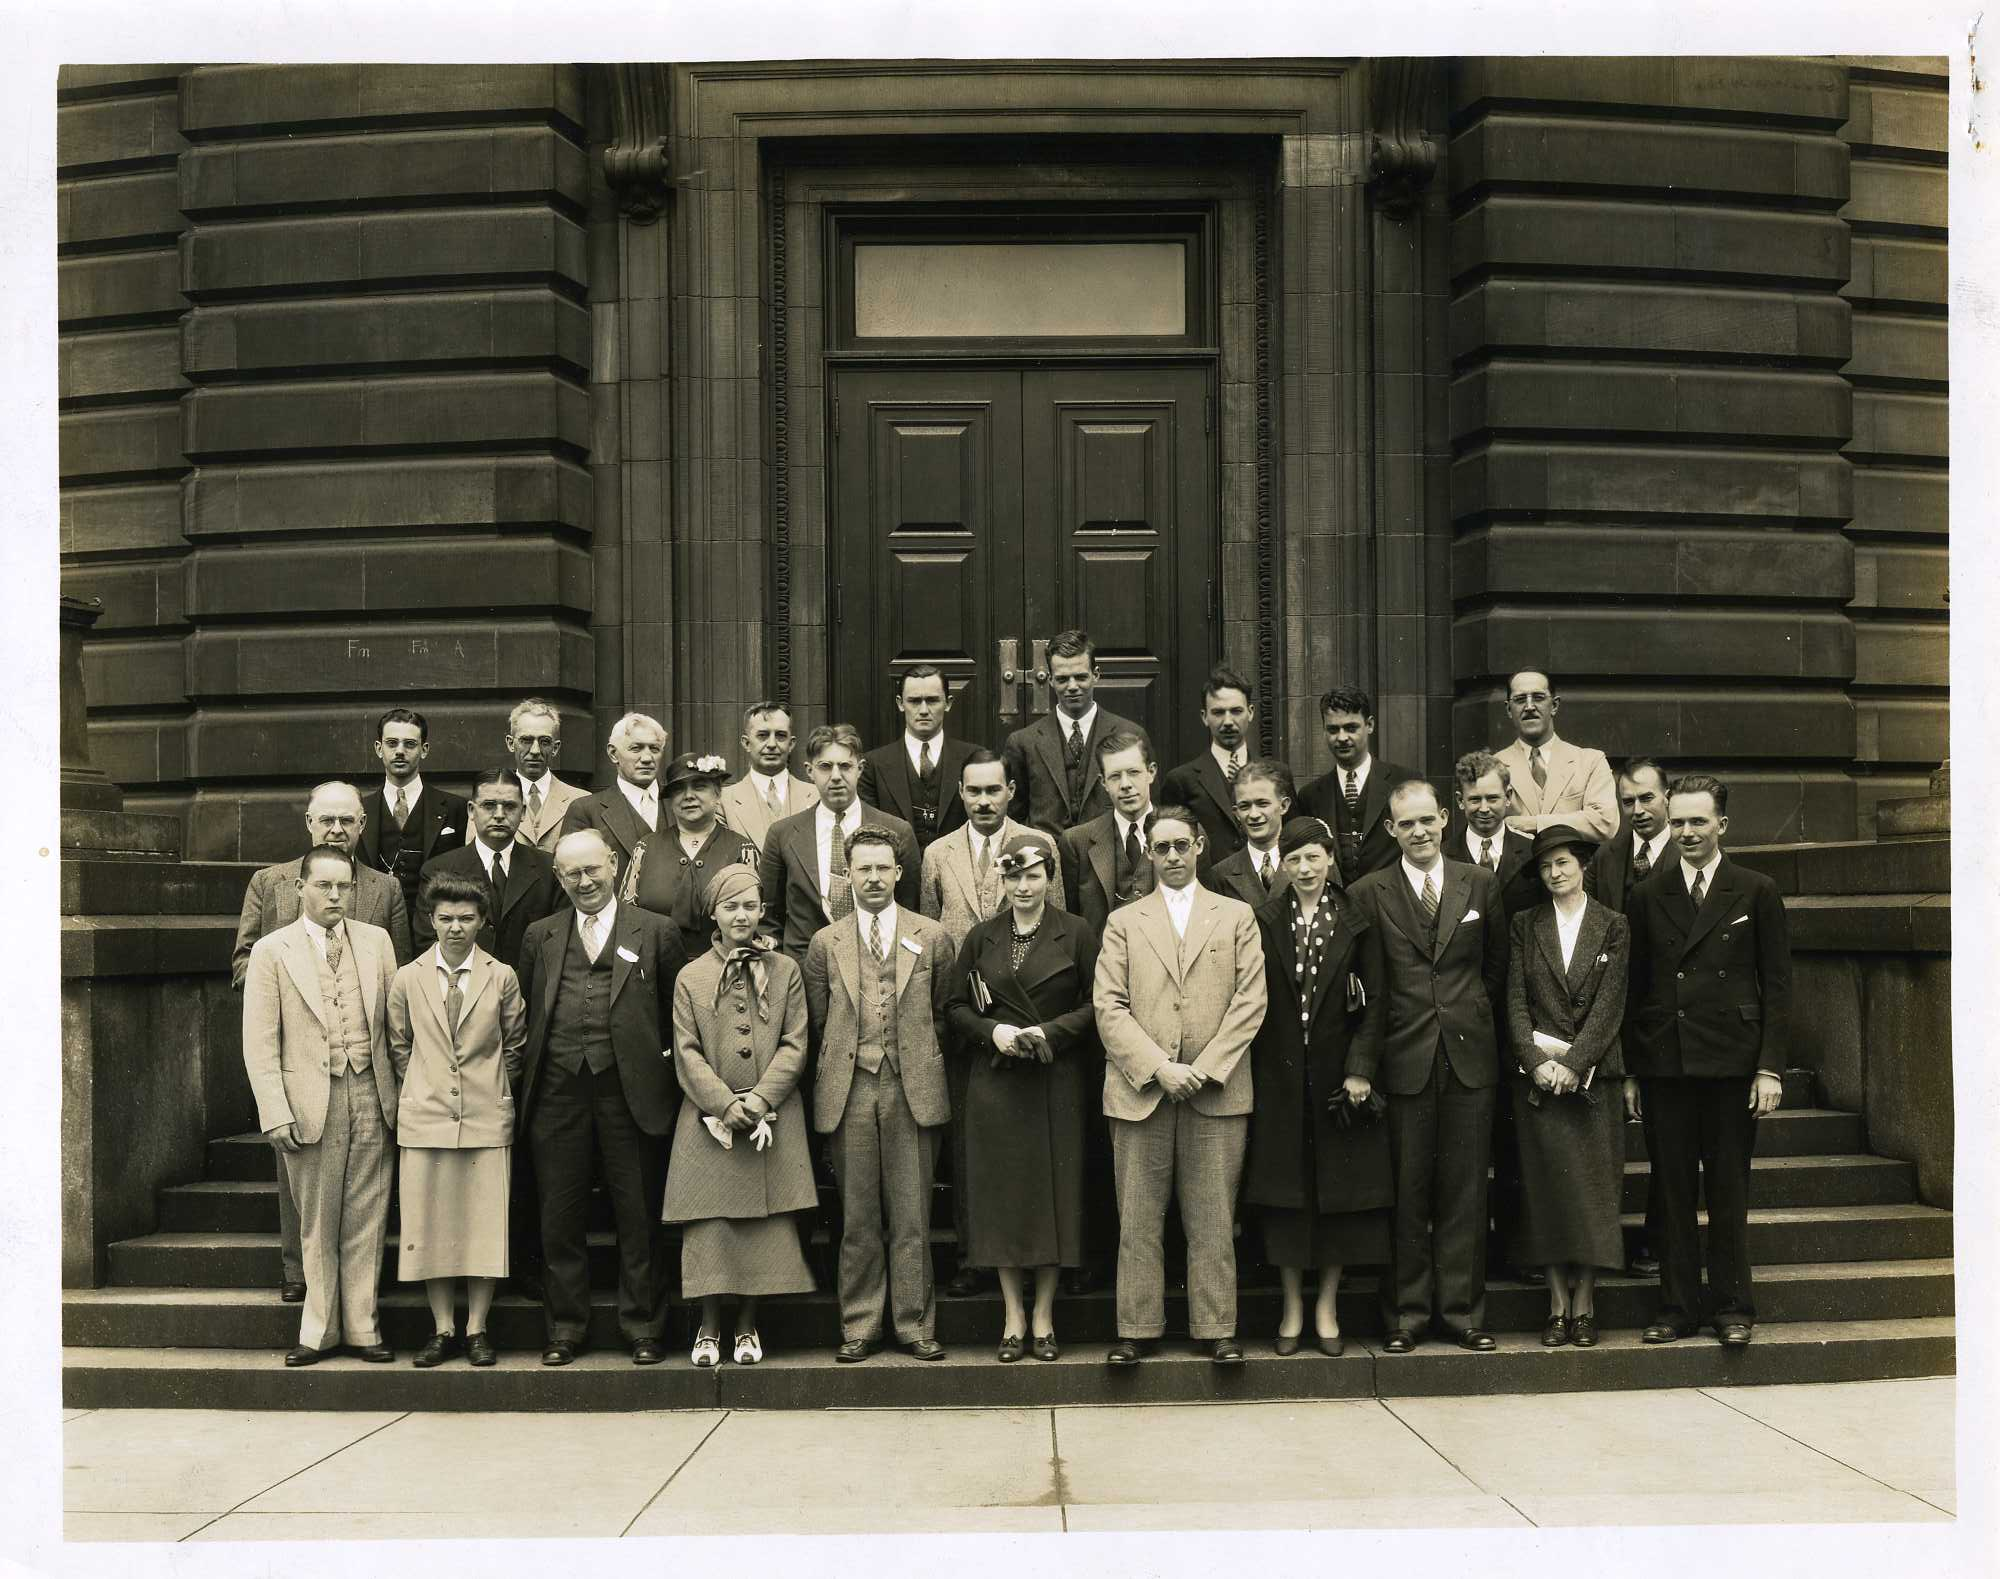 Let this 1935 photo serve as our control group. Note the men are wearing suits, vests, and ties. The